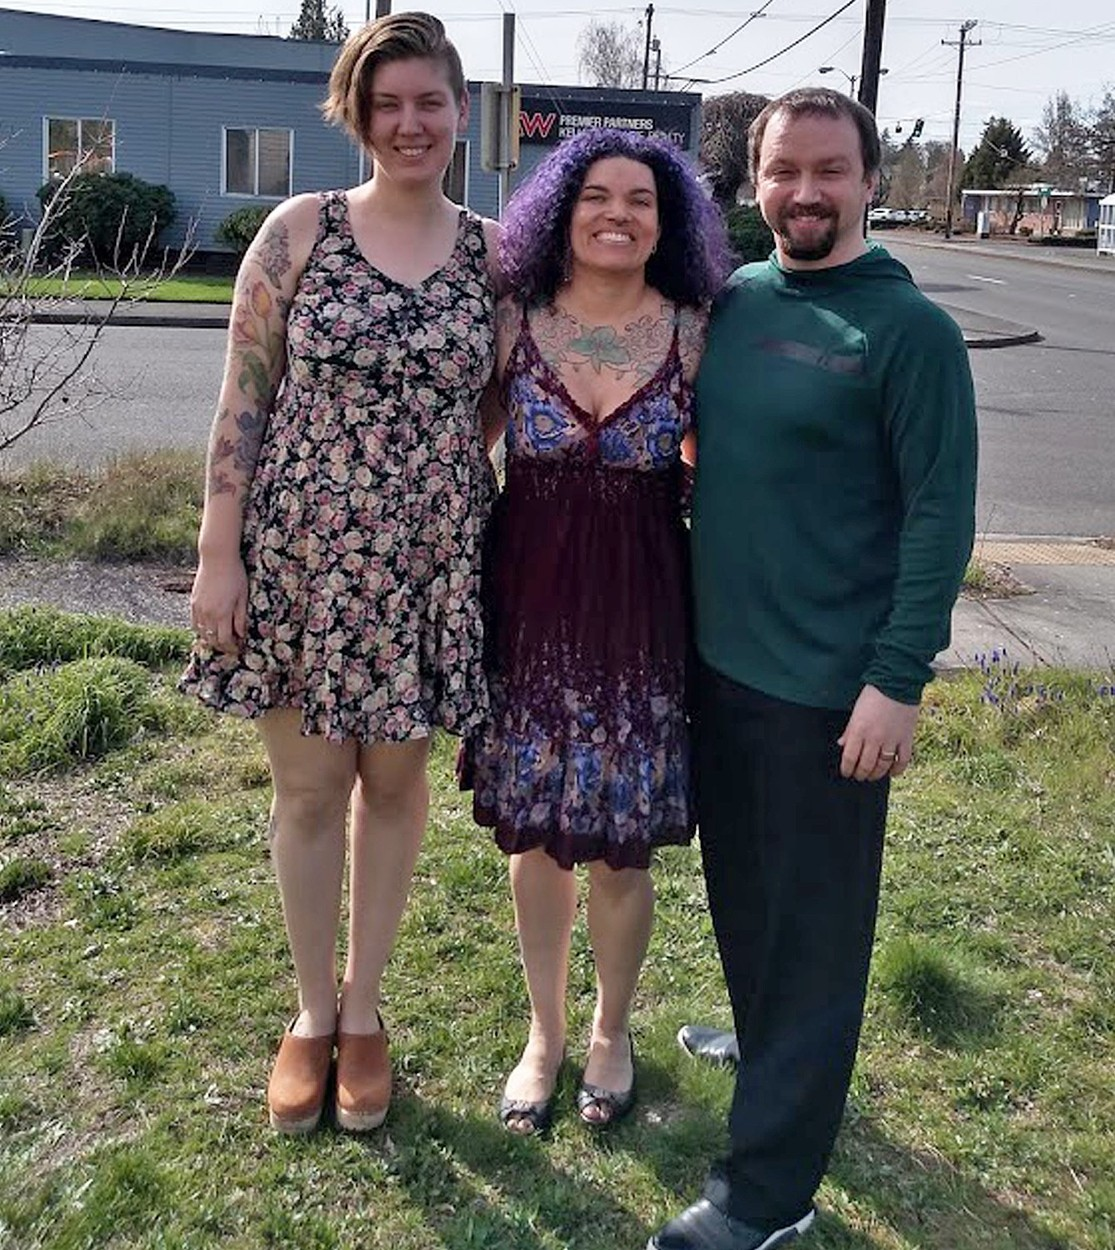 POLYAMOROUS WOMAN REVEALS HER AND HUBBY SLEEP WITH THEIR 'FIANCE' IN KING SIZE BED - IN PIC - (L-R) Ashley Welp, now 24, Ava Miller, now 40, and Anthony Miller, now 37, pictured in 2019. - A woman has revealed she is in a polyamorous relationship with her husband and 'fiancéâ. Ava Miller, 40, of Washington State, USA, had been married to husband, Anthony Miller, 37, for 16 years, until they decided to invite Ashley Welp, 24, into their marriage. Now the trio share a king-sized bed, and Ashley has become an 'aunt' to Ava and Anthony's two young sons. While some may find their marriage unconventional, Ava insists the polyamorous group have never felt happier. SEE HOTSPOT MEDIA COPY 0121 551 1004, Image: 440390423, License: Rights-managed, Restrictions: , Model Release: no, Credit line: HotSpot Media / HotSpot Media / Profimedia